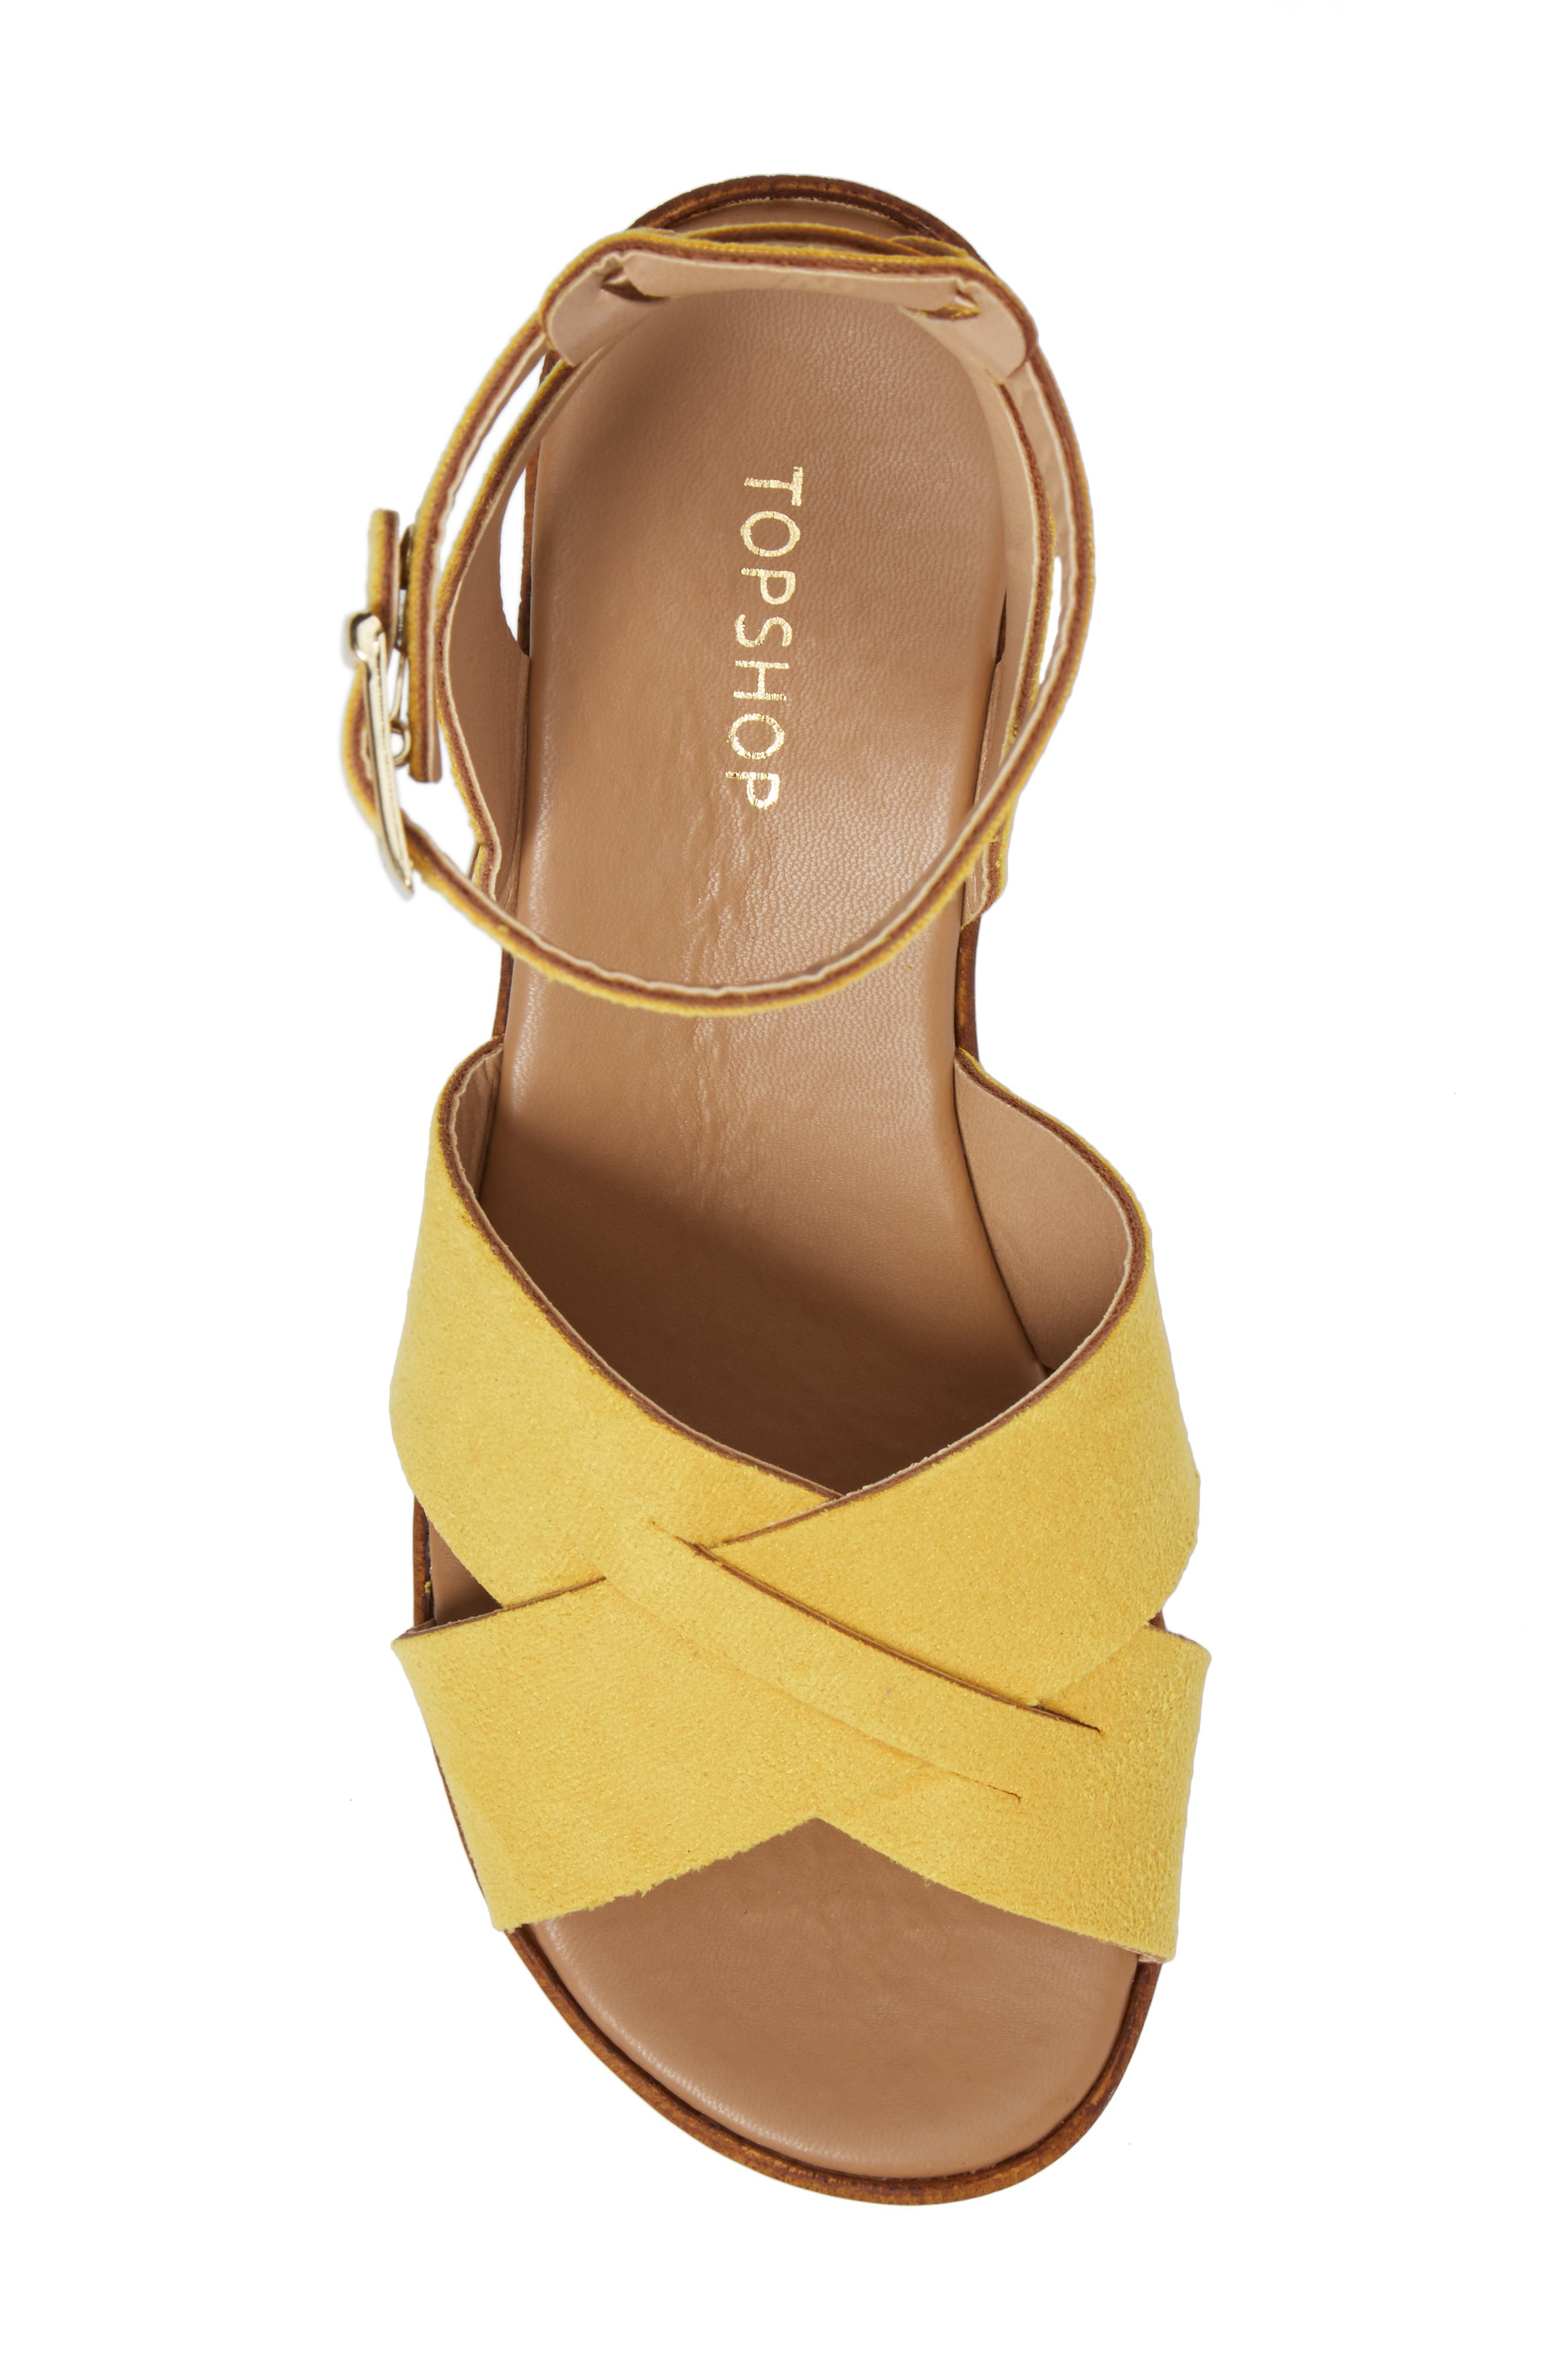 Dolly Block Heel Sandal,                             Alternate thumbnail 7, color,                             Yellow